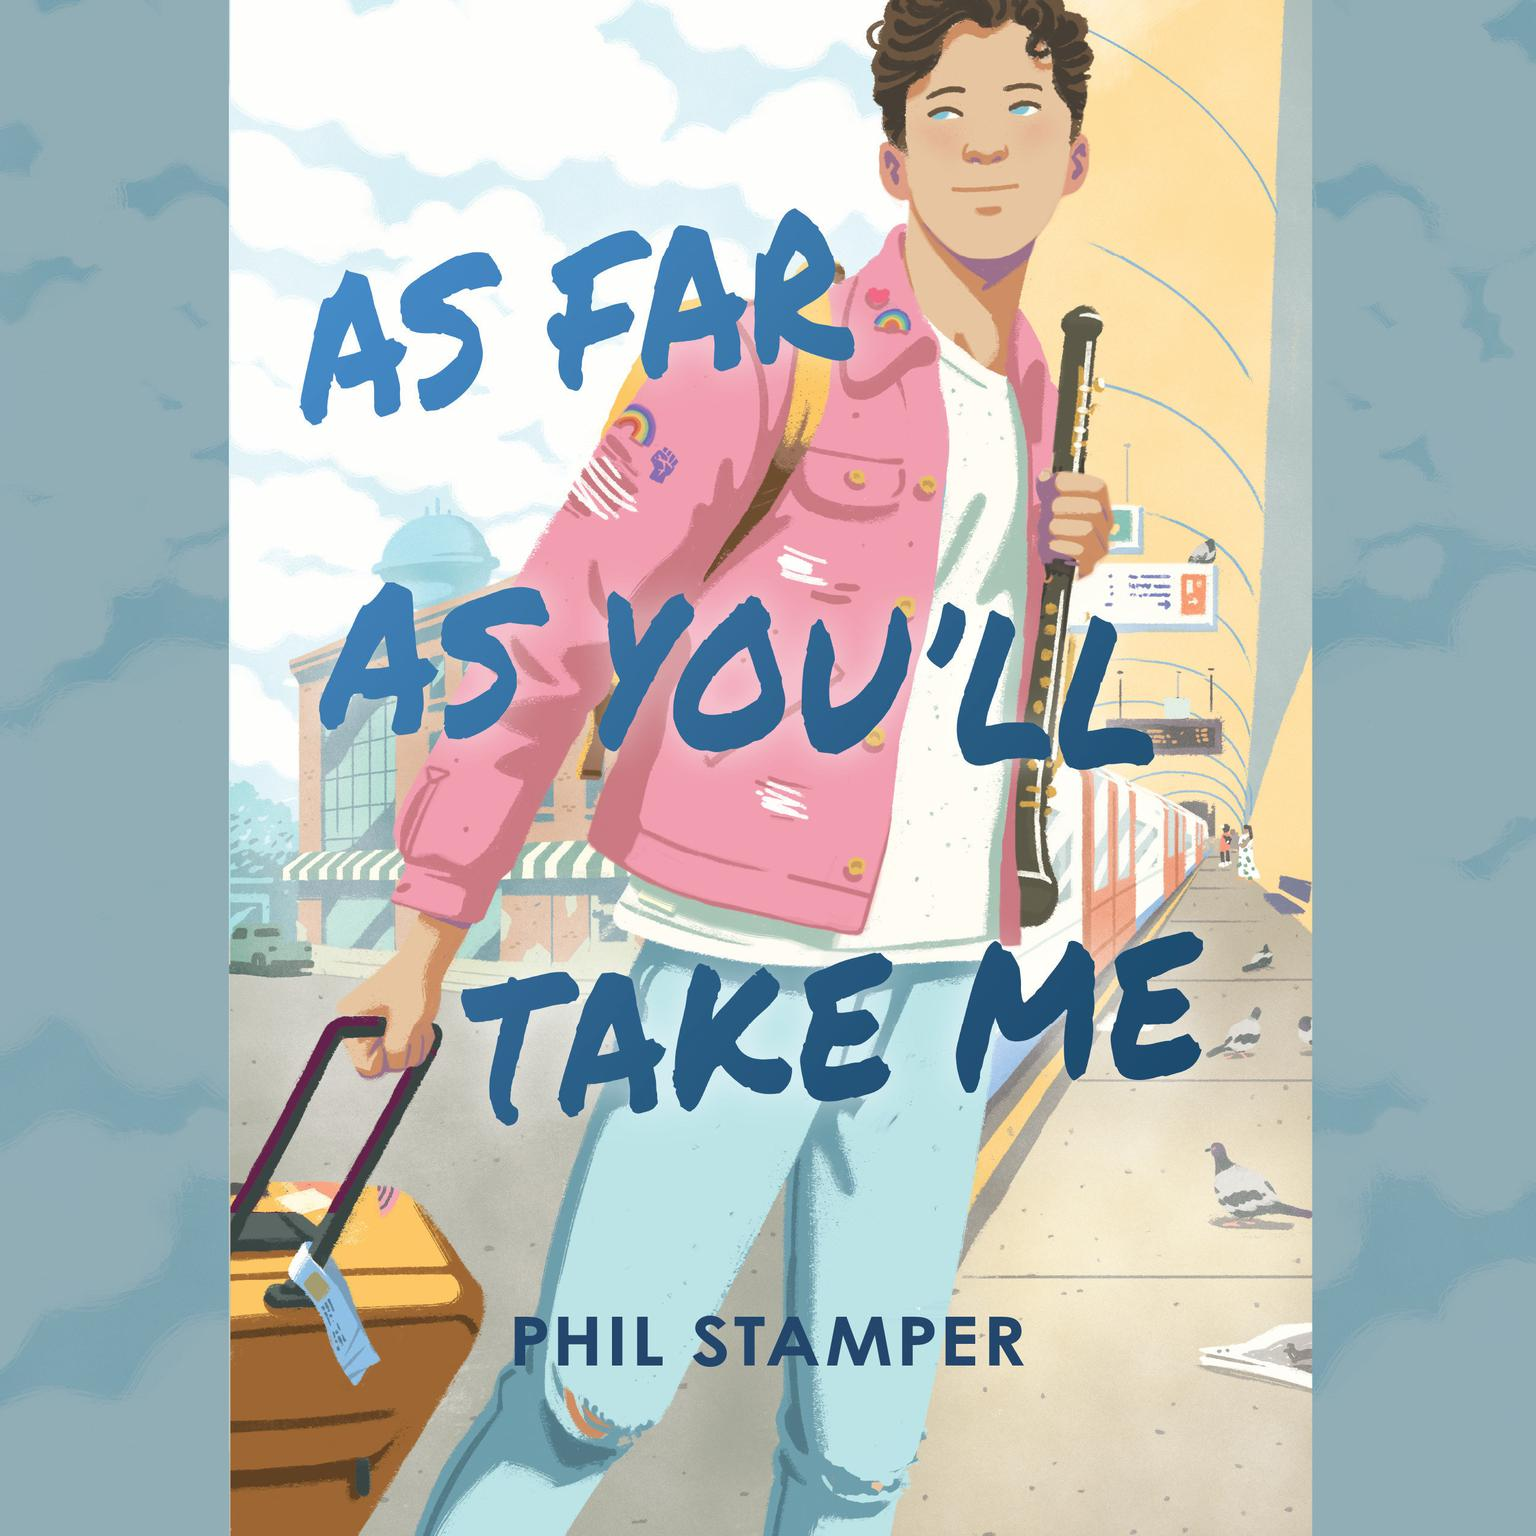 As Far As Youll Take Me Audiobook, by Phil Stamper